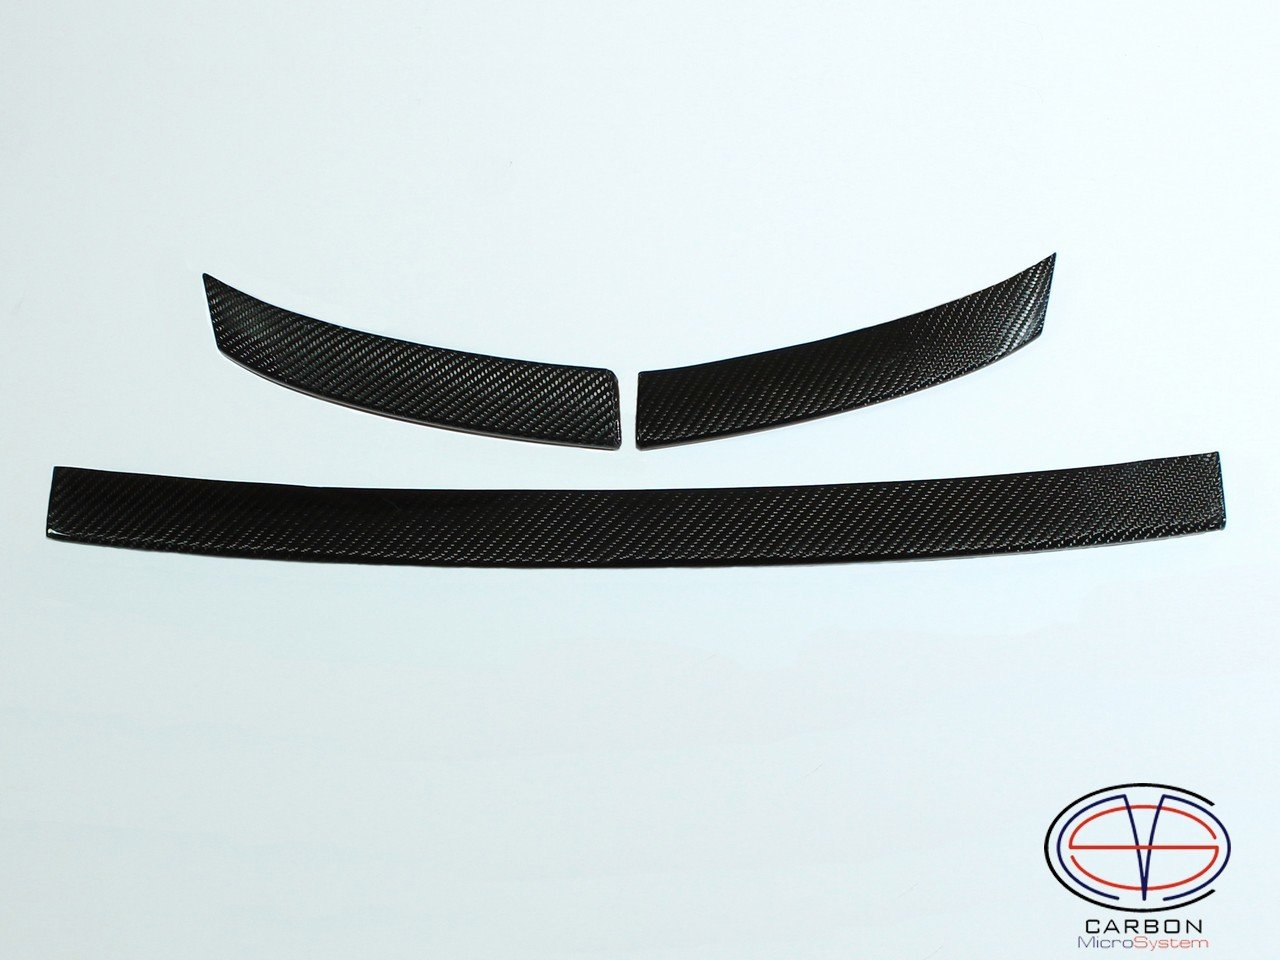 2 headlights trim and hood trim from Carbon Fiber for TOYOTA Celica  ST 182, ST 183, ST 185 GT4